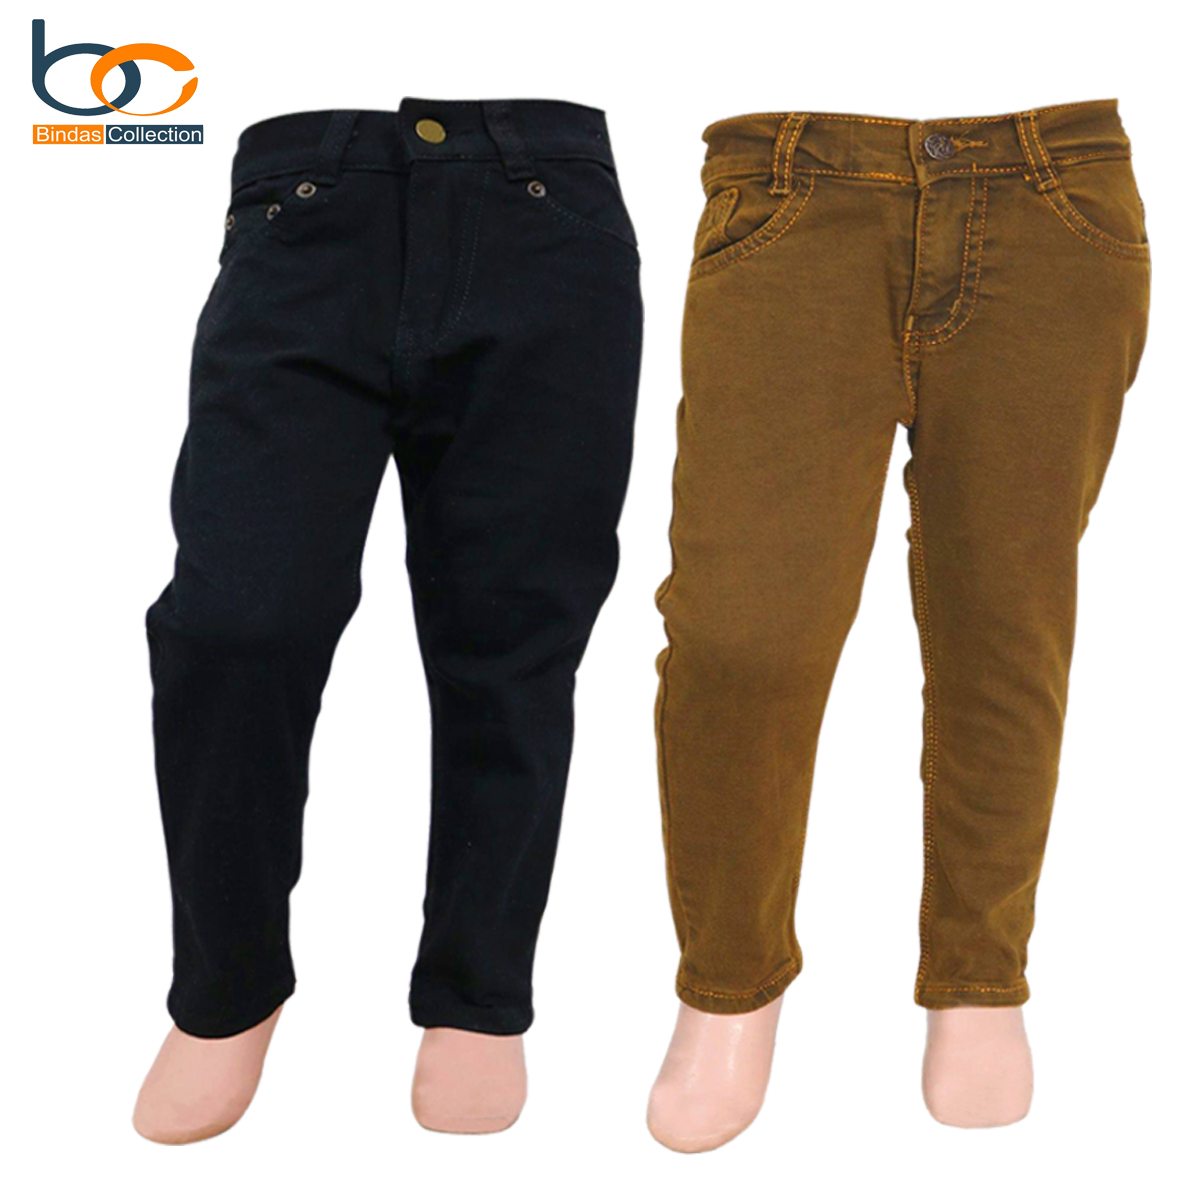 Bindas Collection Pack Of 2 Basic Denim Jeans Pants For Kids